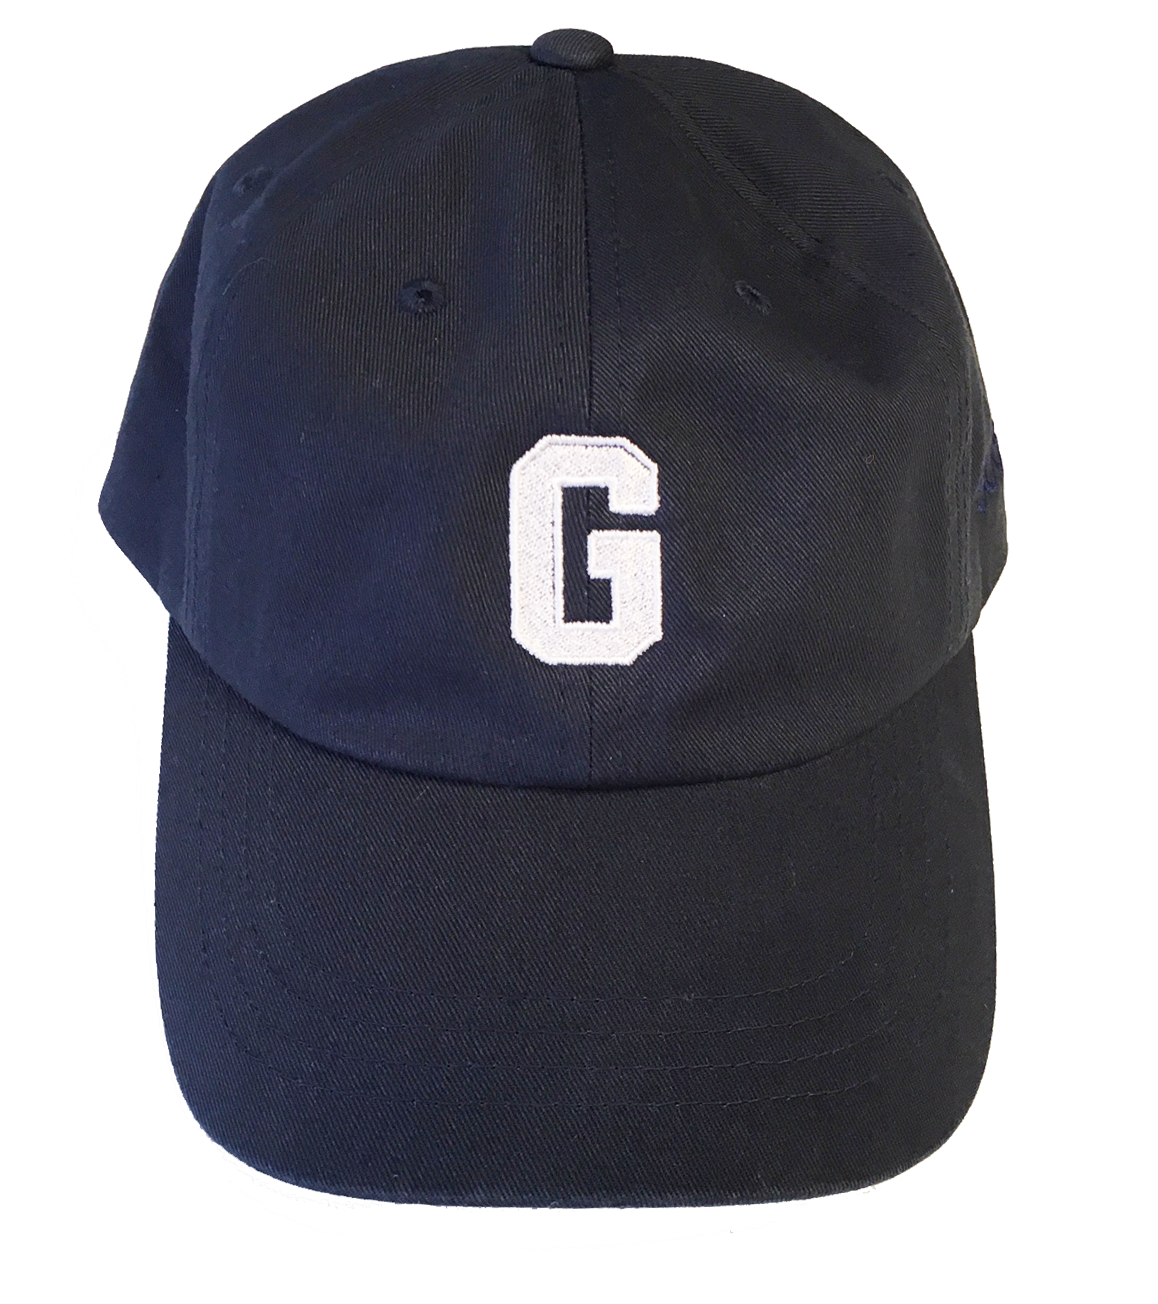 homestead_grays_hat_front_1024x1024@2x.png